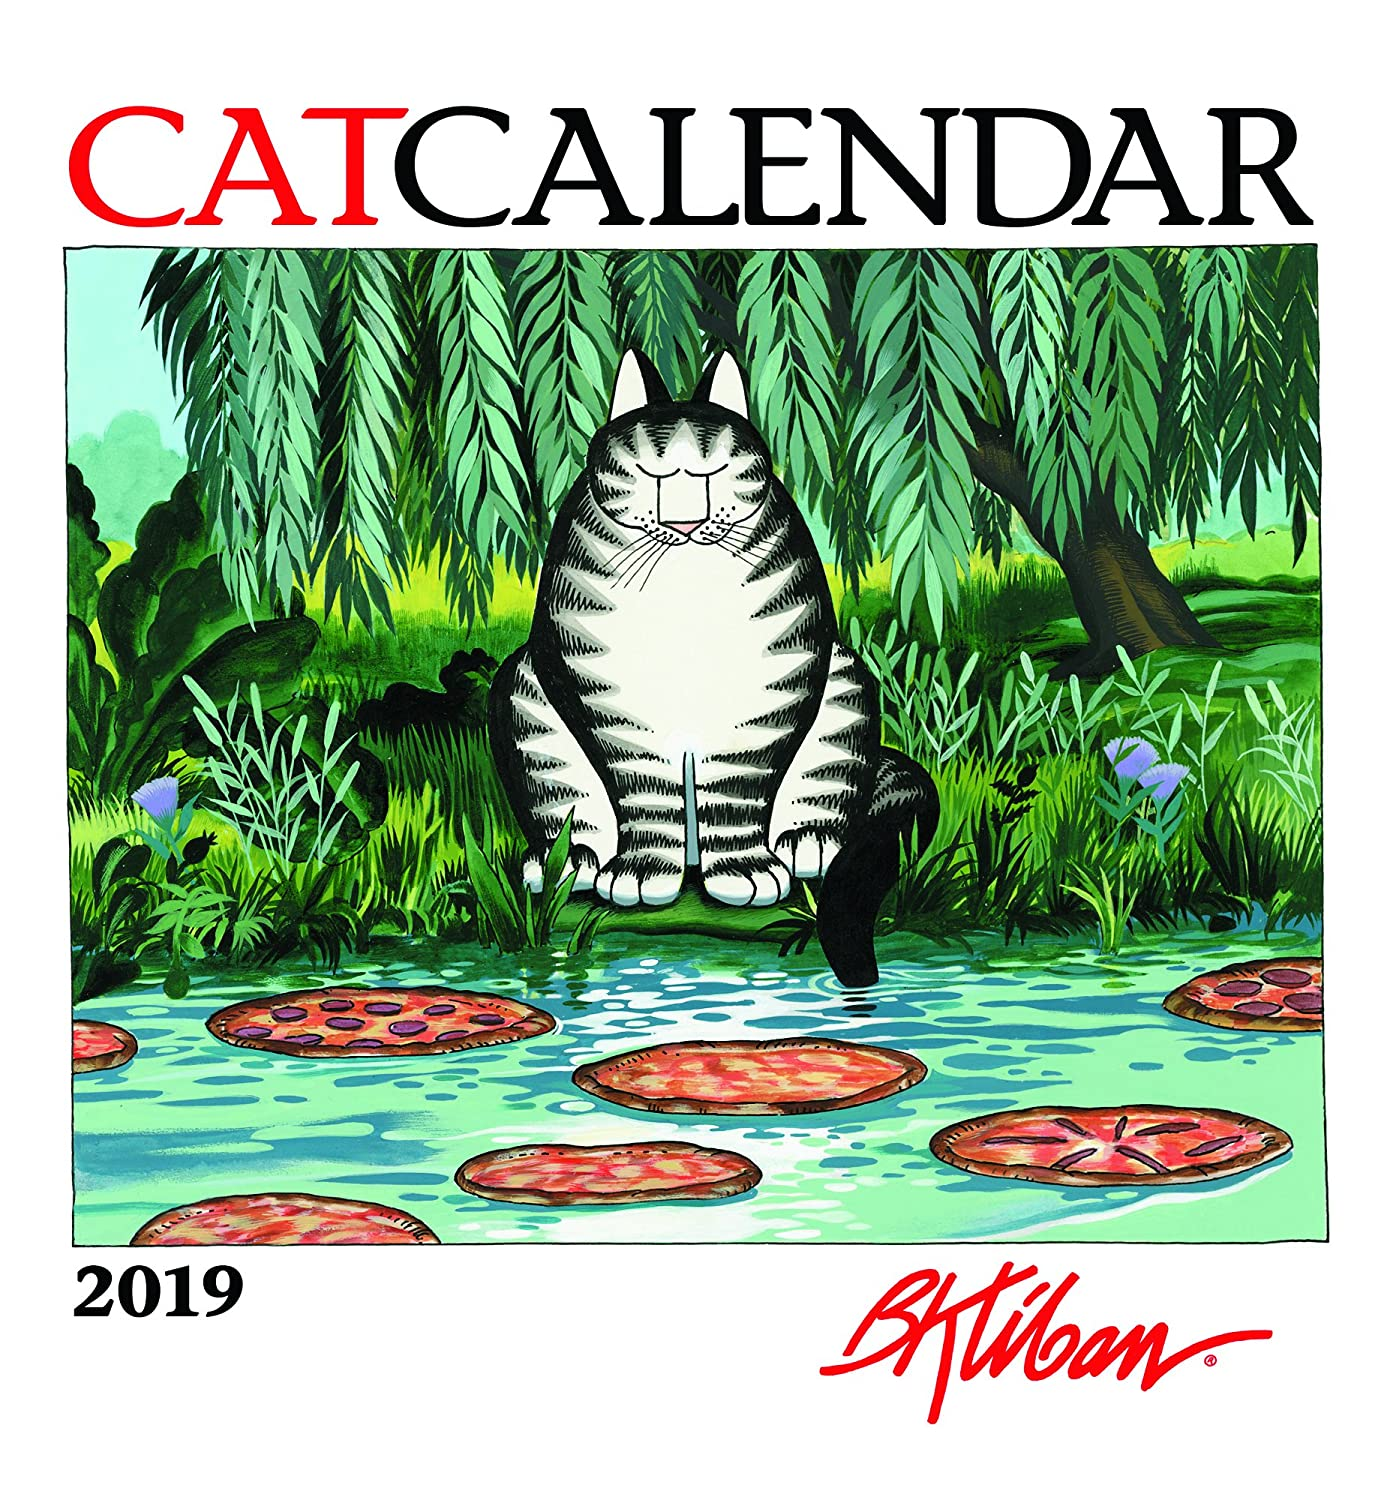 B. Kliban - Catcalendar 2019 Calendar Pomegranate 0764979965 Entertainment / Humor Calendars